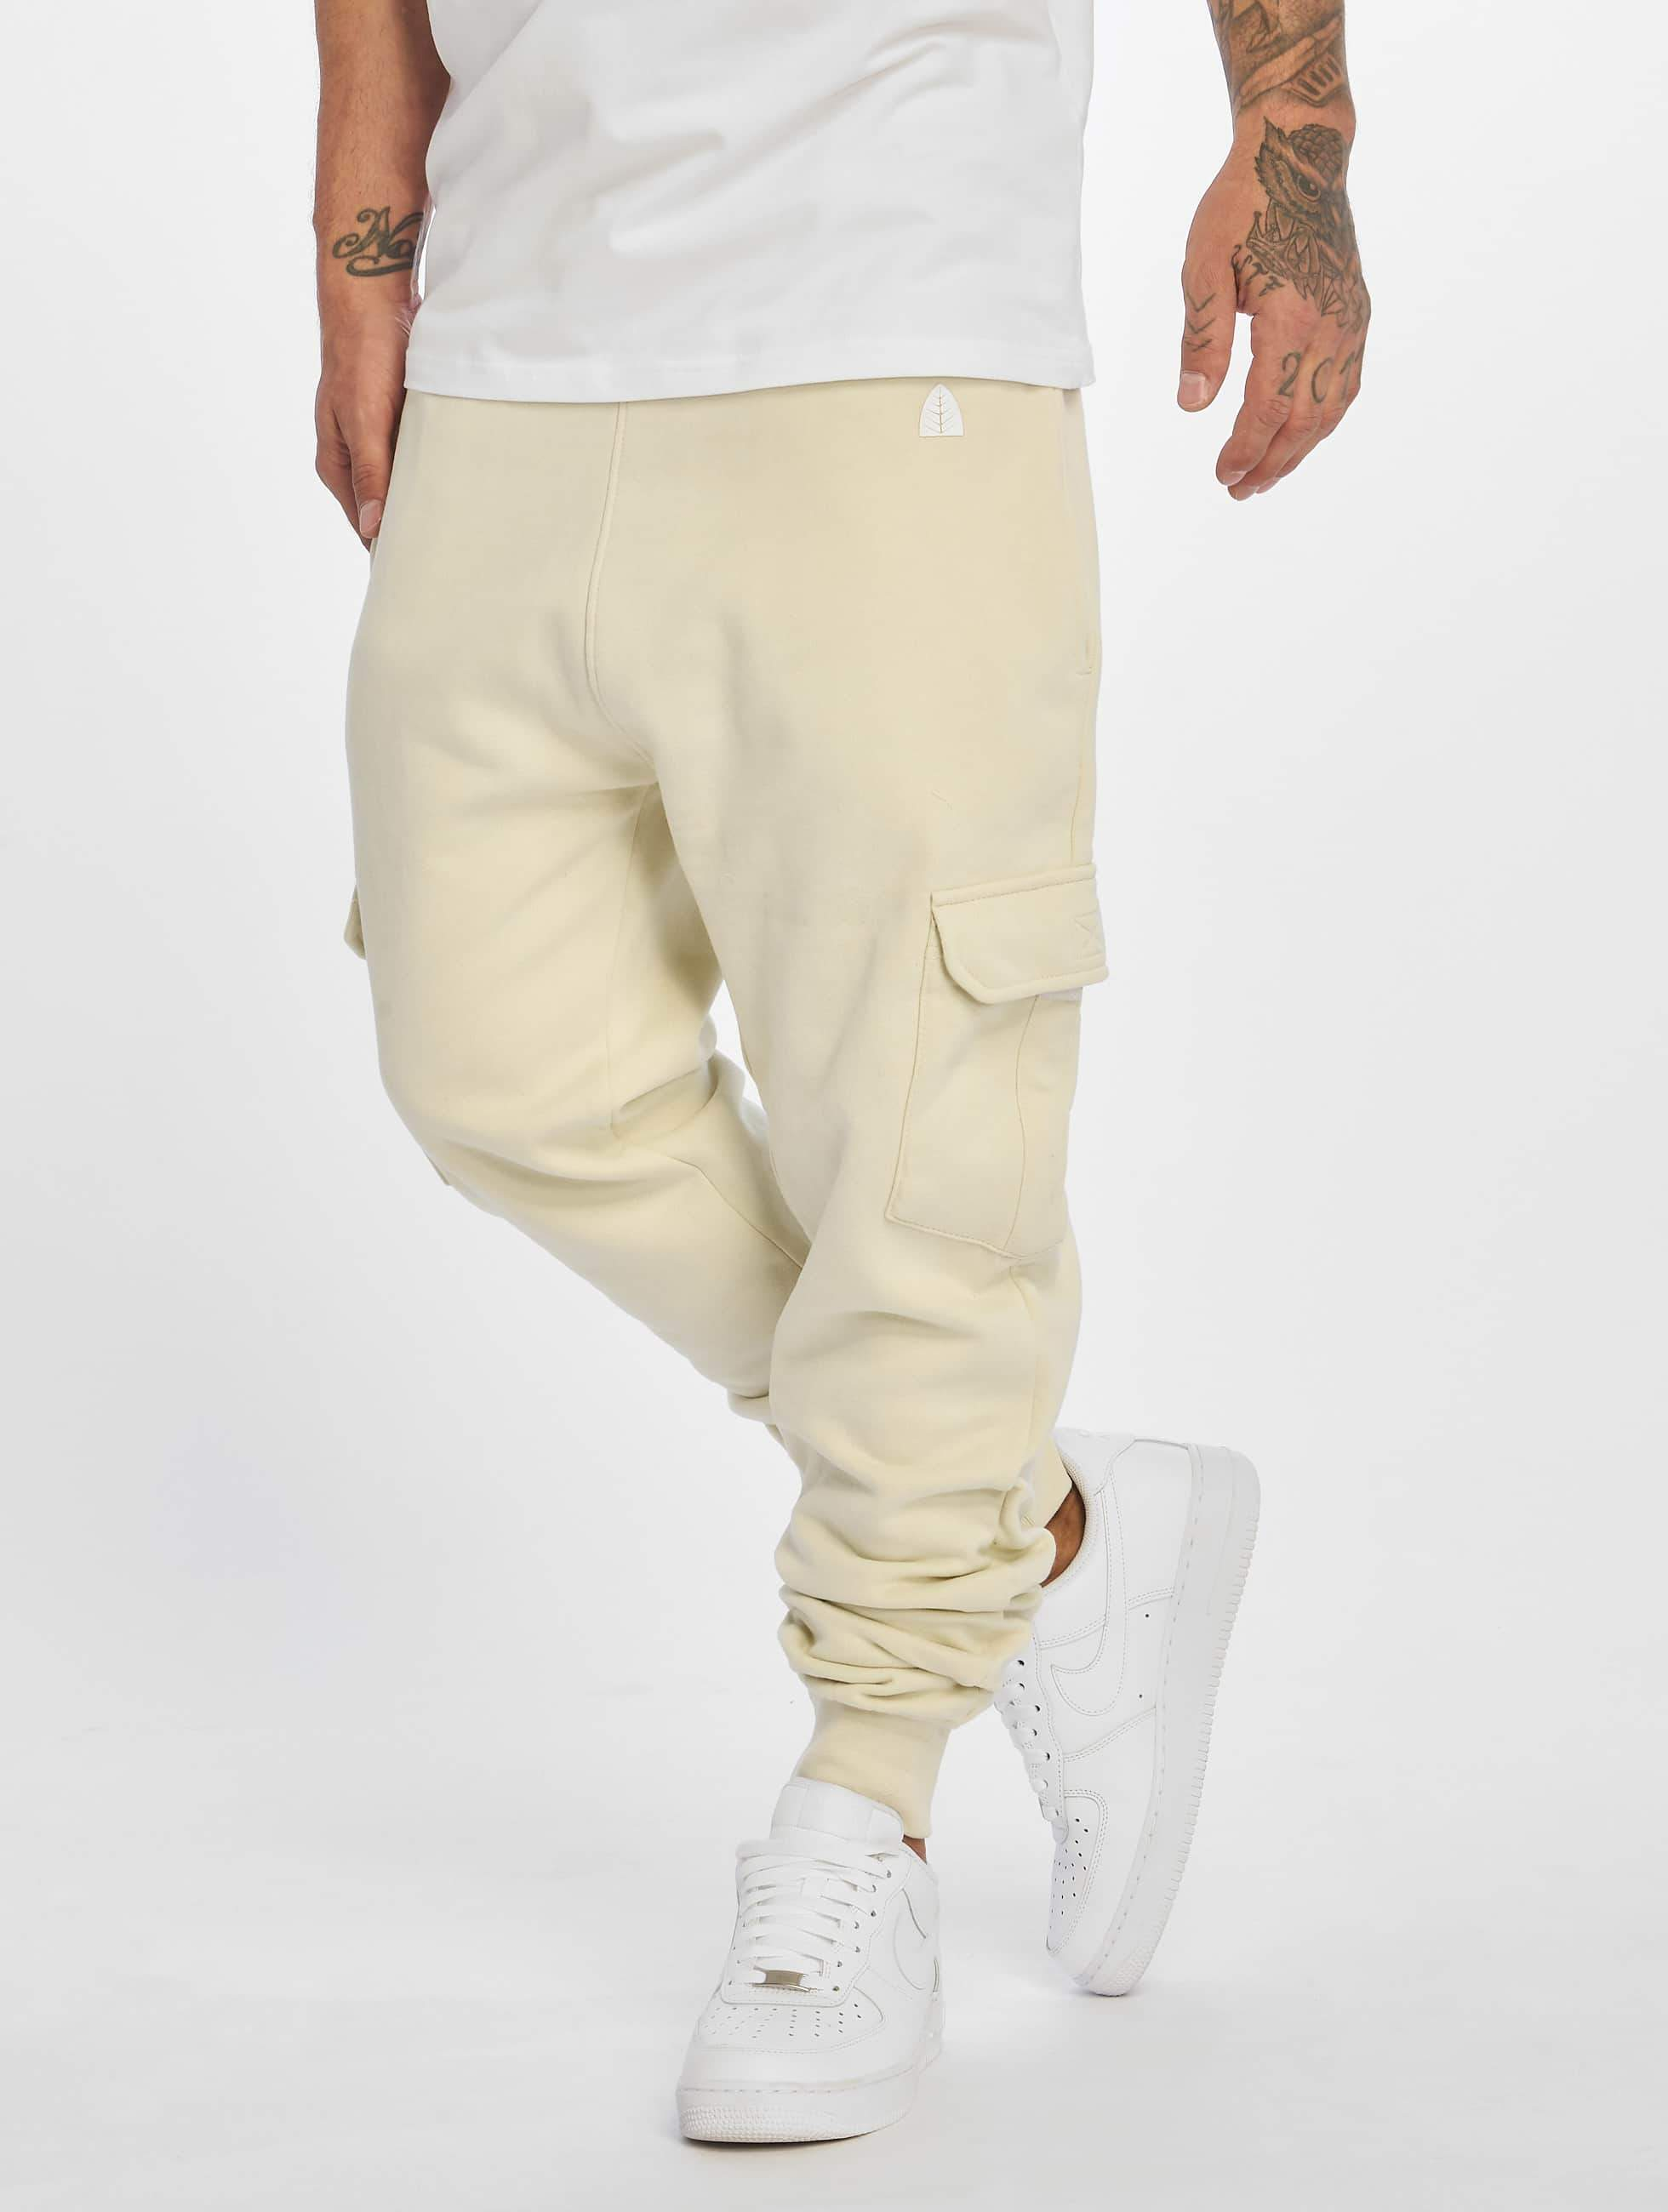 Just Rhyse / Sweat Pant Huaraz in beige S